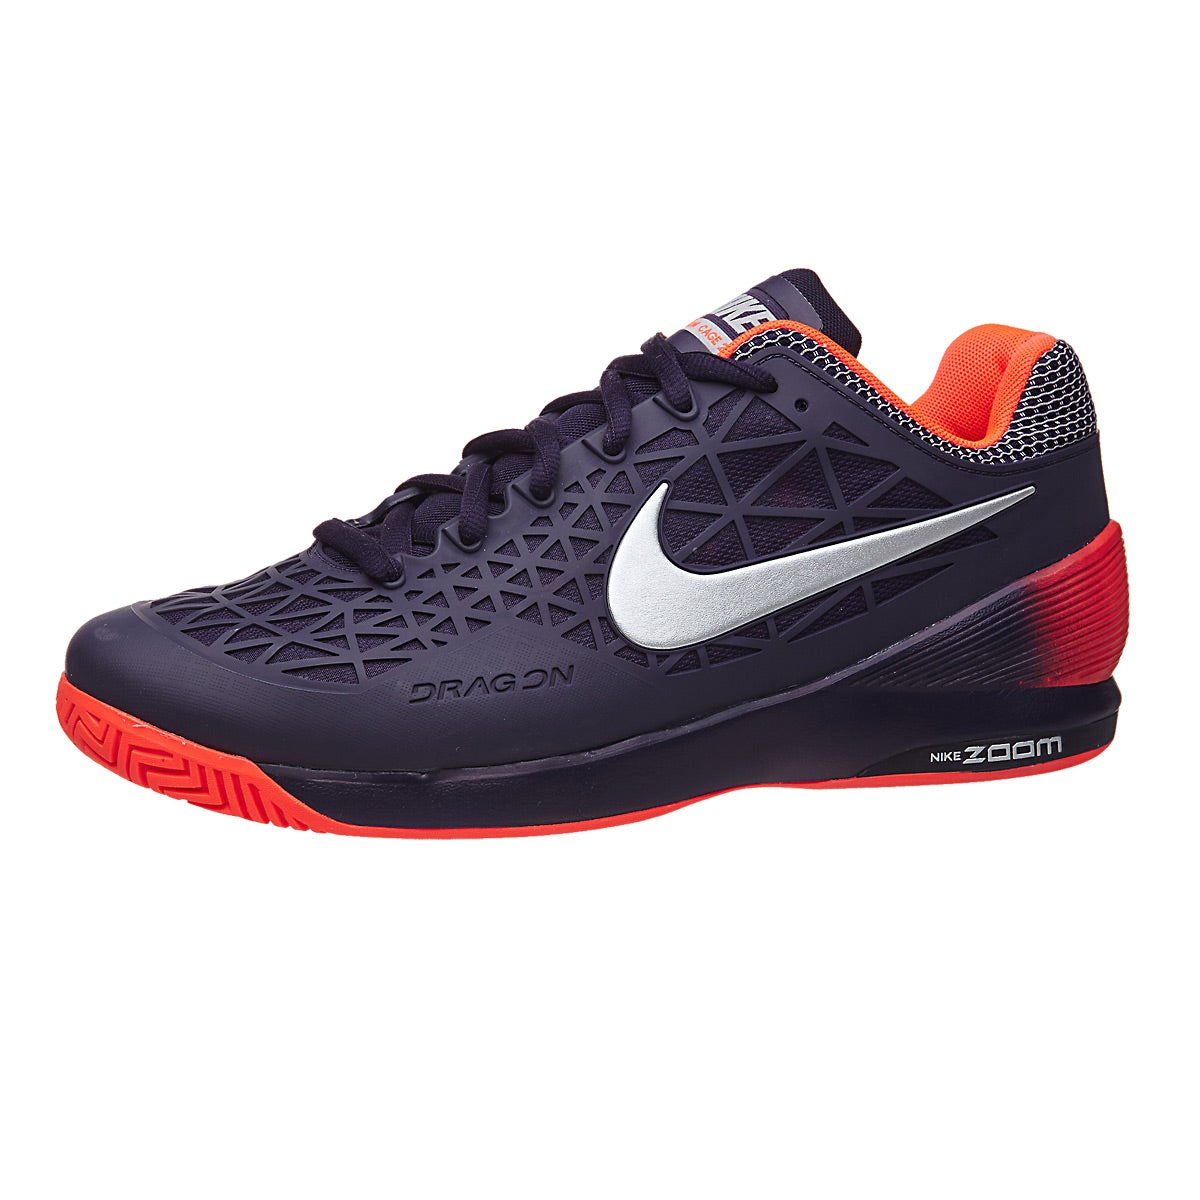 sports shoes bd5f5 7f1fe ... italy winflo 2 black orange white nike zoom cage 2 purple crimson silver  . e1ee5 e214f